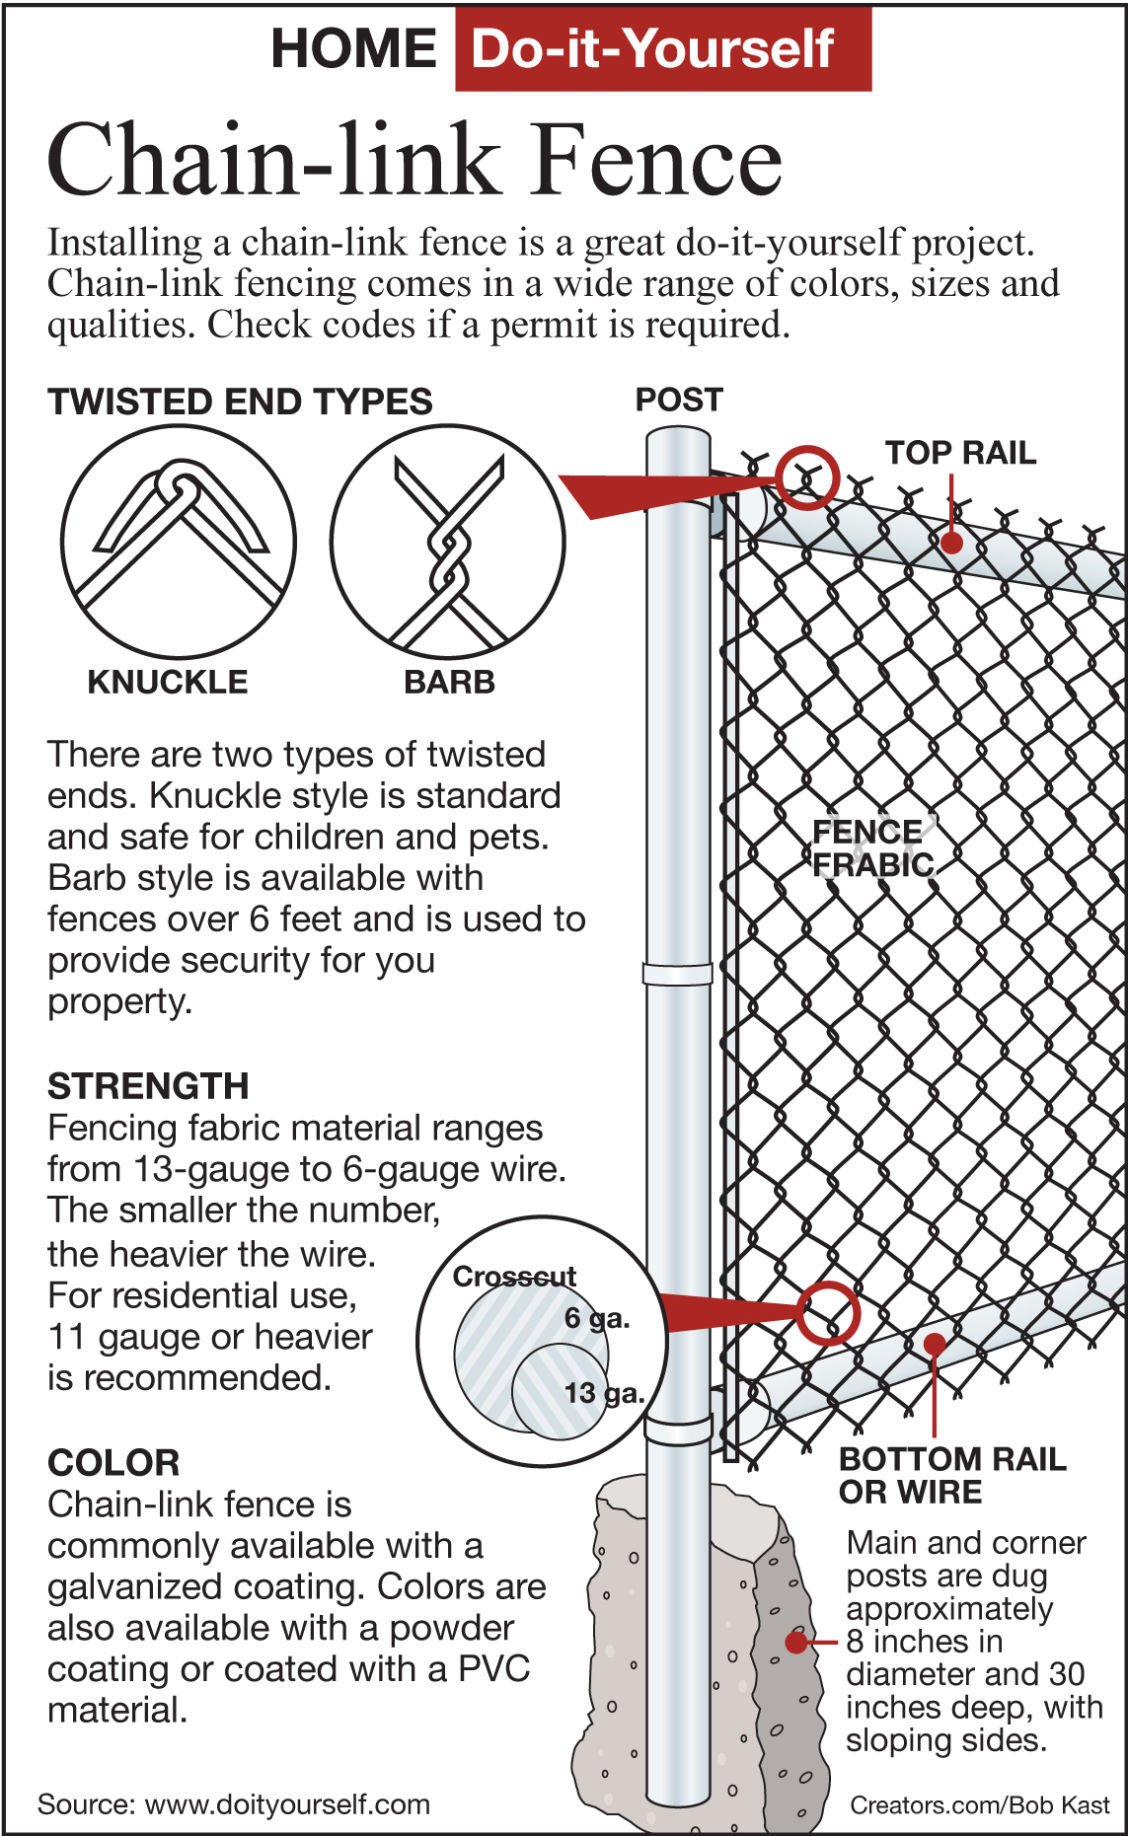 Select the proper components for a chain-link fence | Siouxland ...